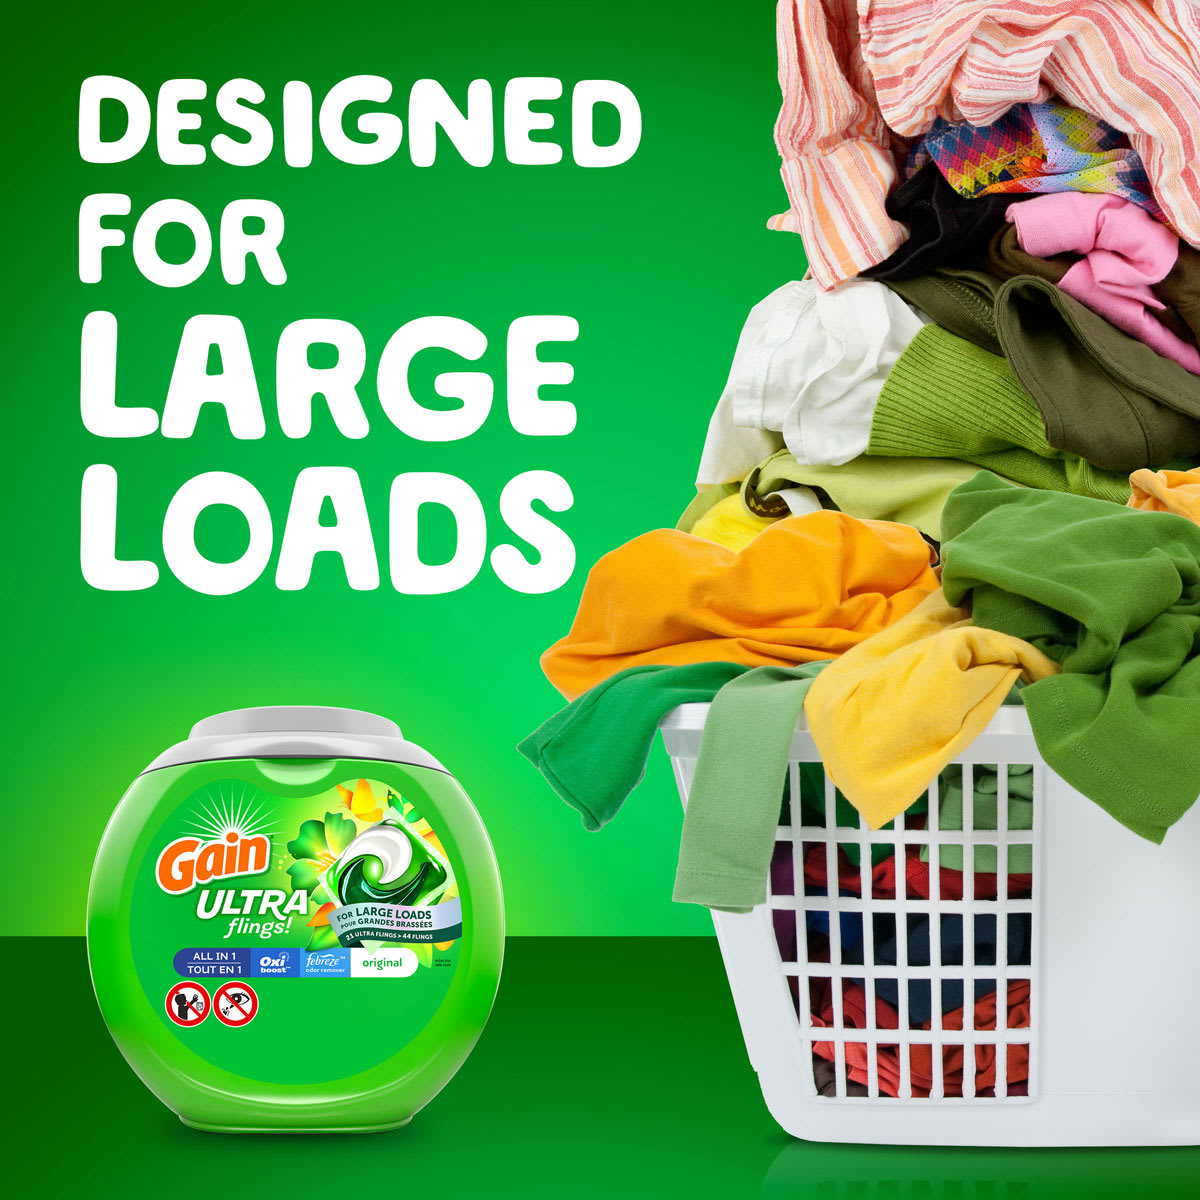 Gain Ultra Flings Laundry Pacs are designed for large loads